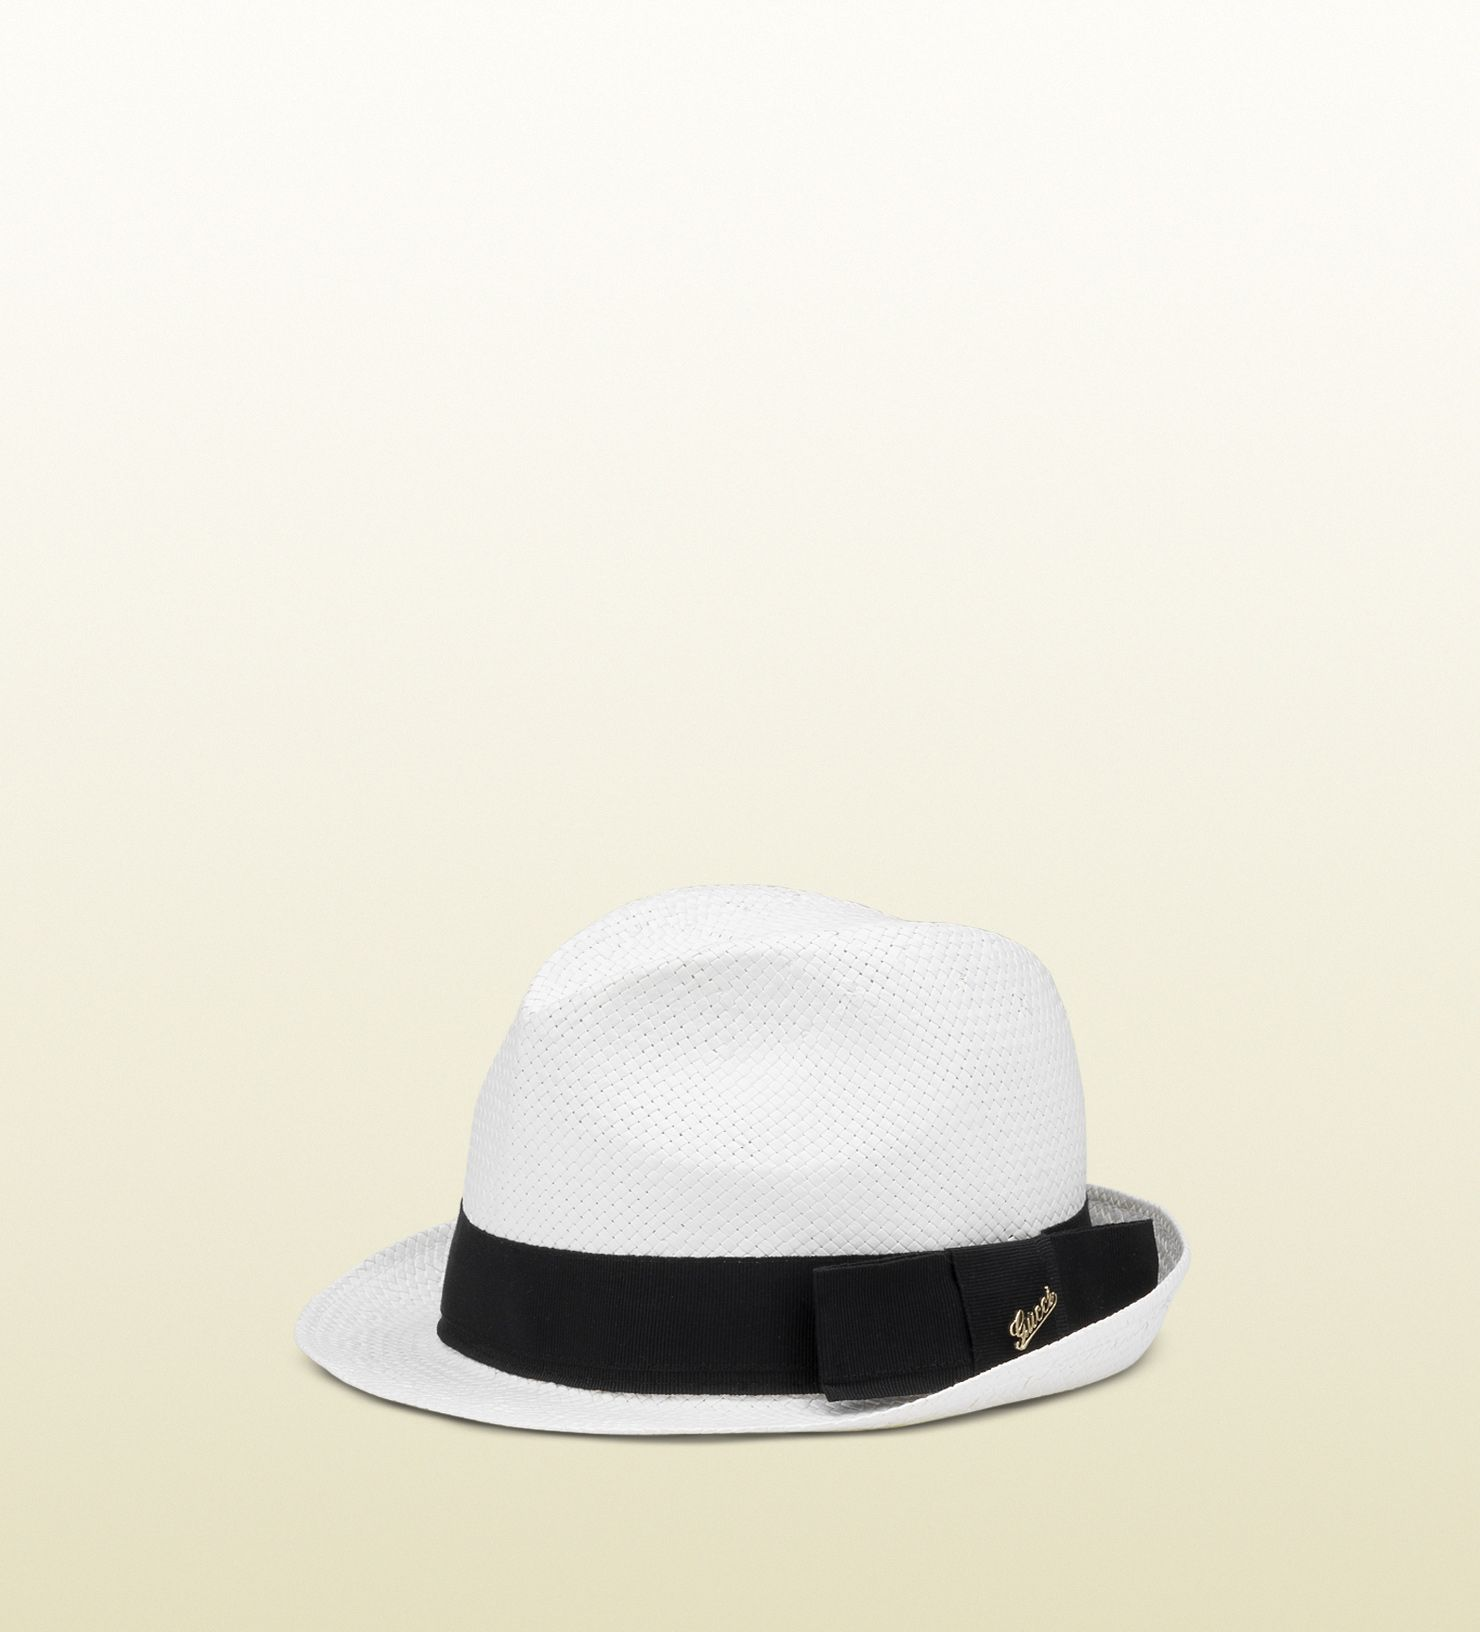 Panama hat with gucci script logo ornament.   Fashion   Pinterest ... b97022147b3